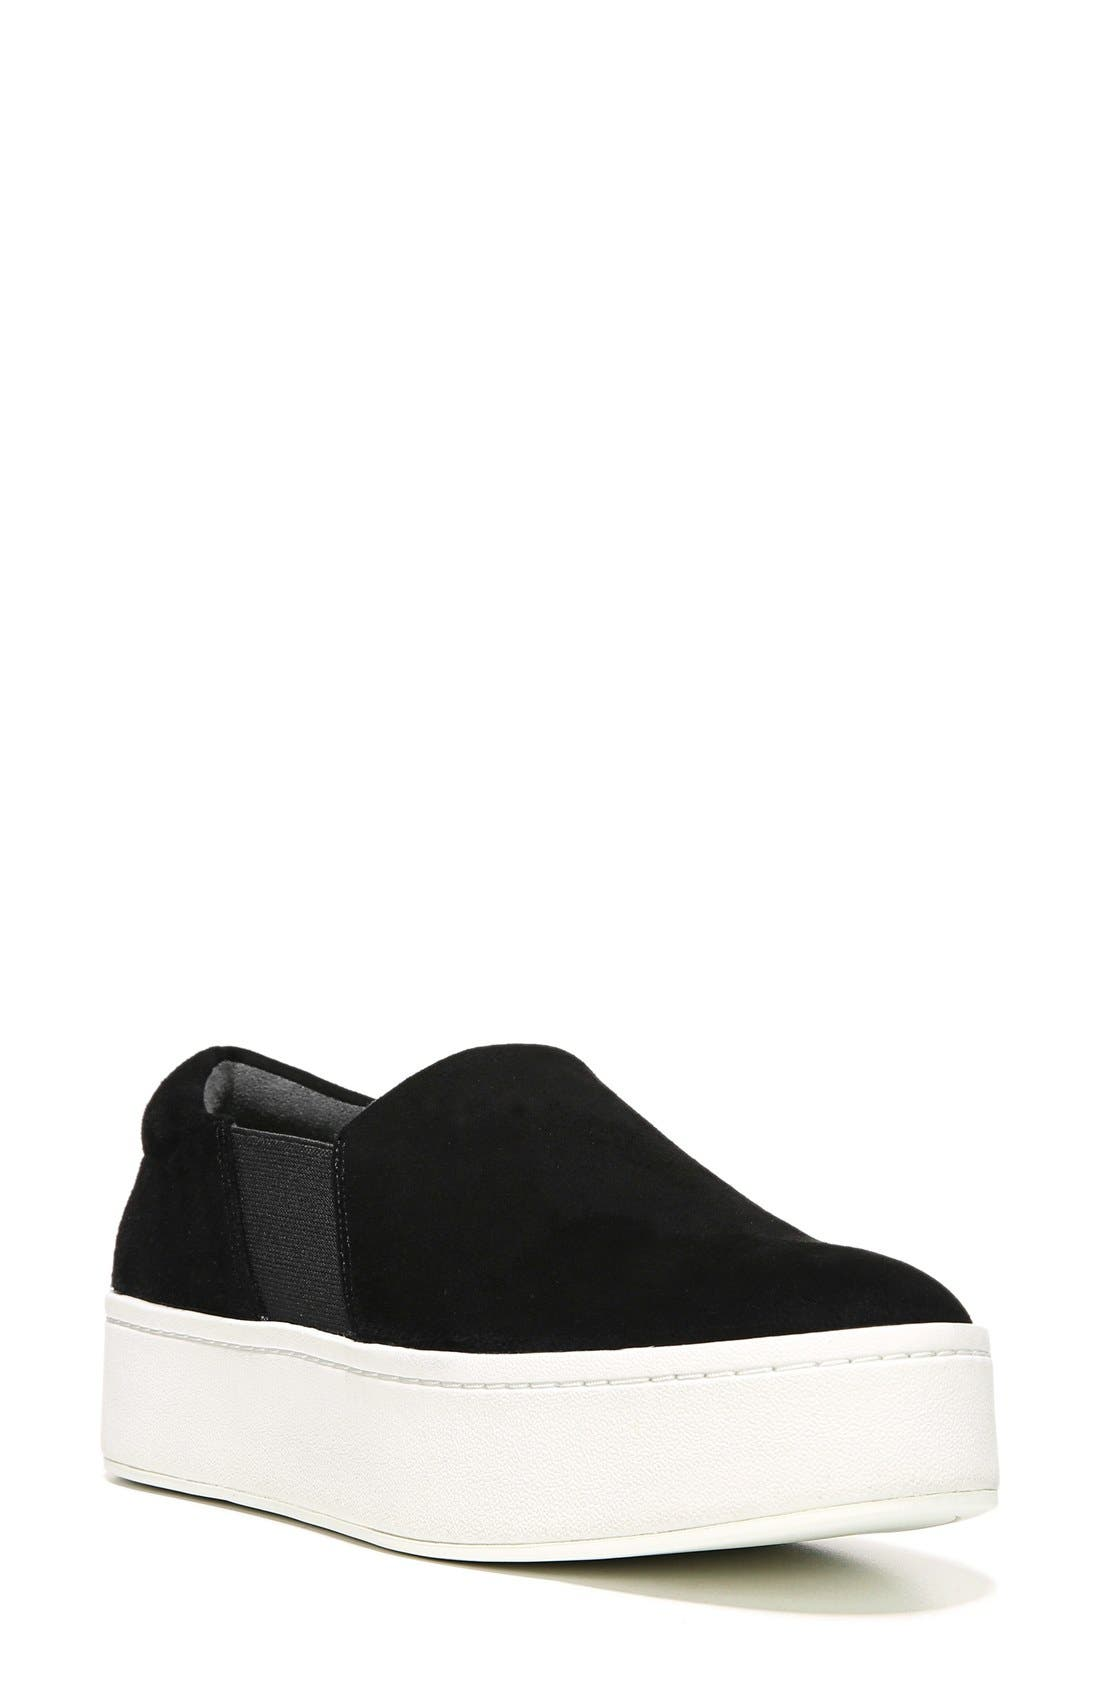 Warren Suede Platform Skate Sneakers in Black Suede